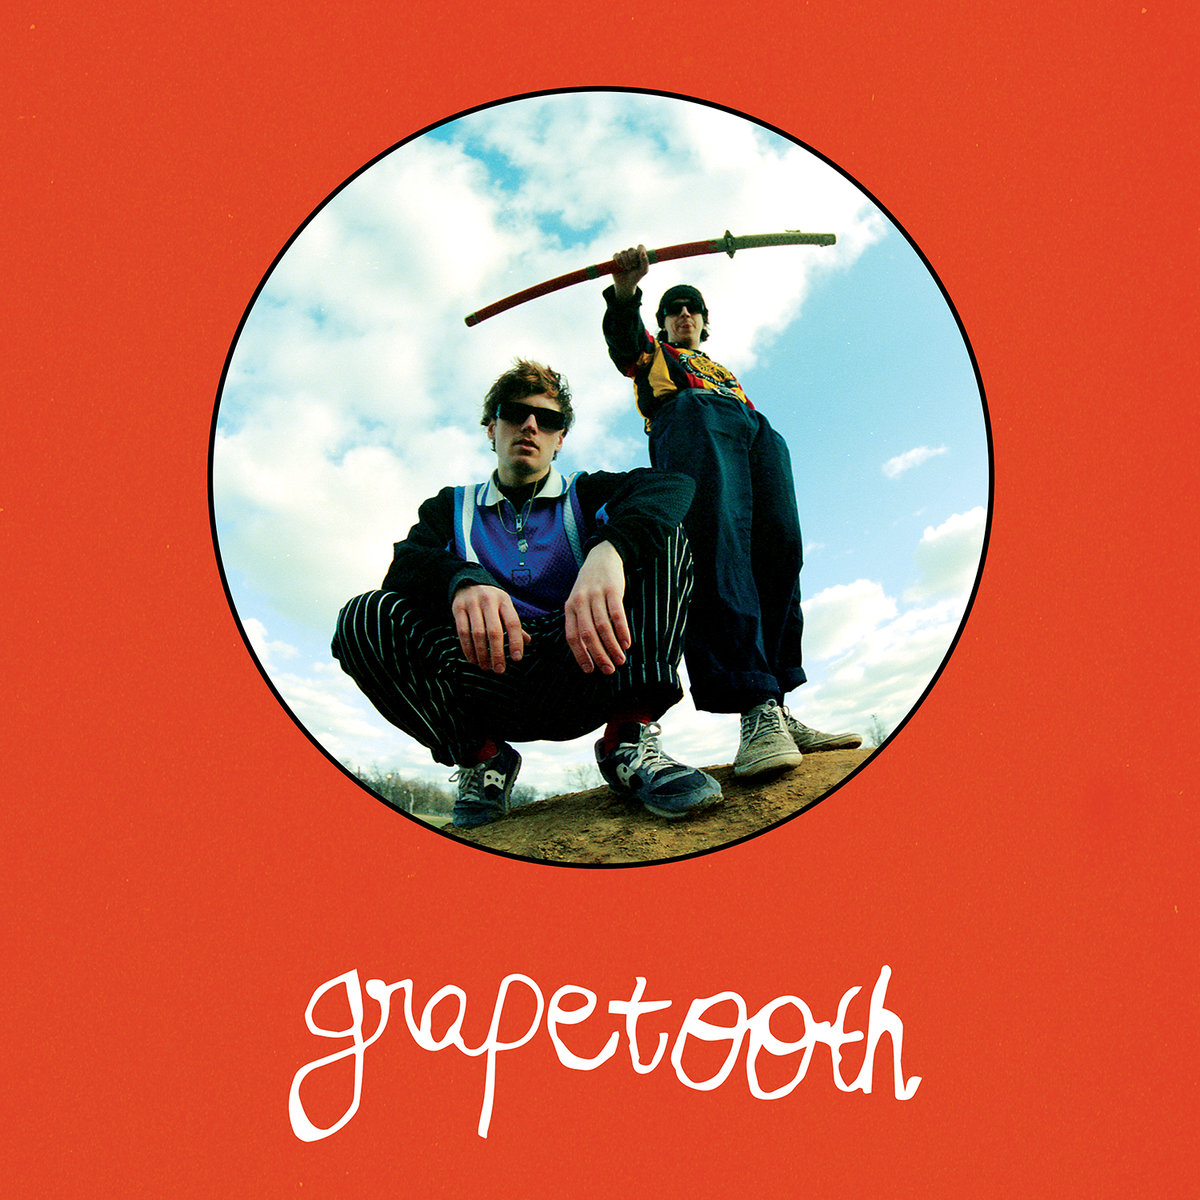 Grapetooth Grapetooth